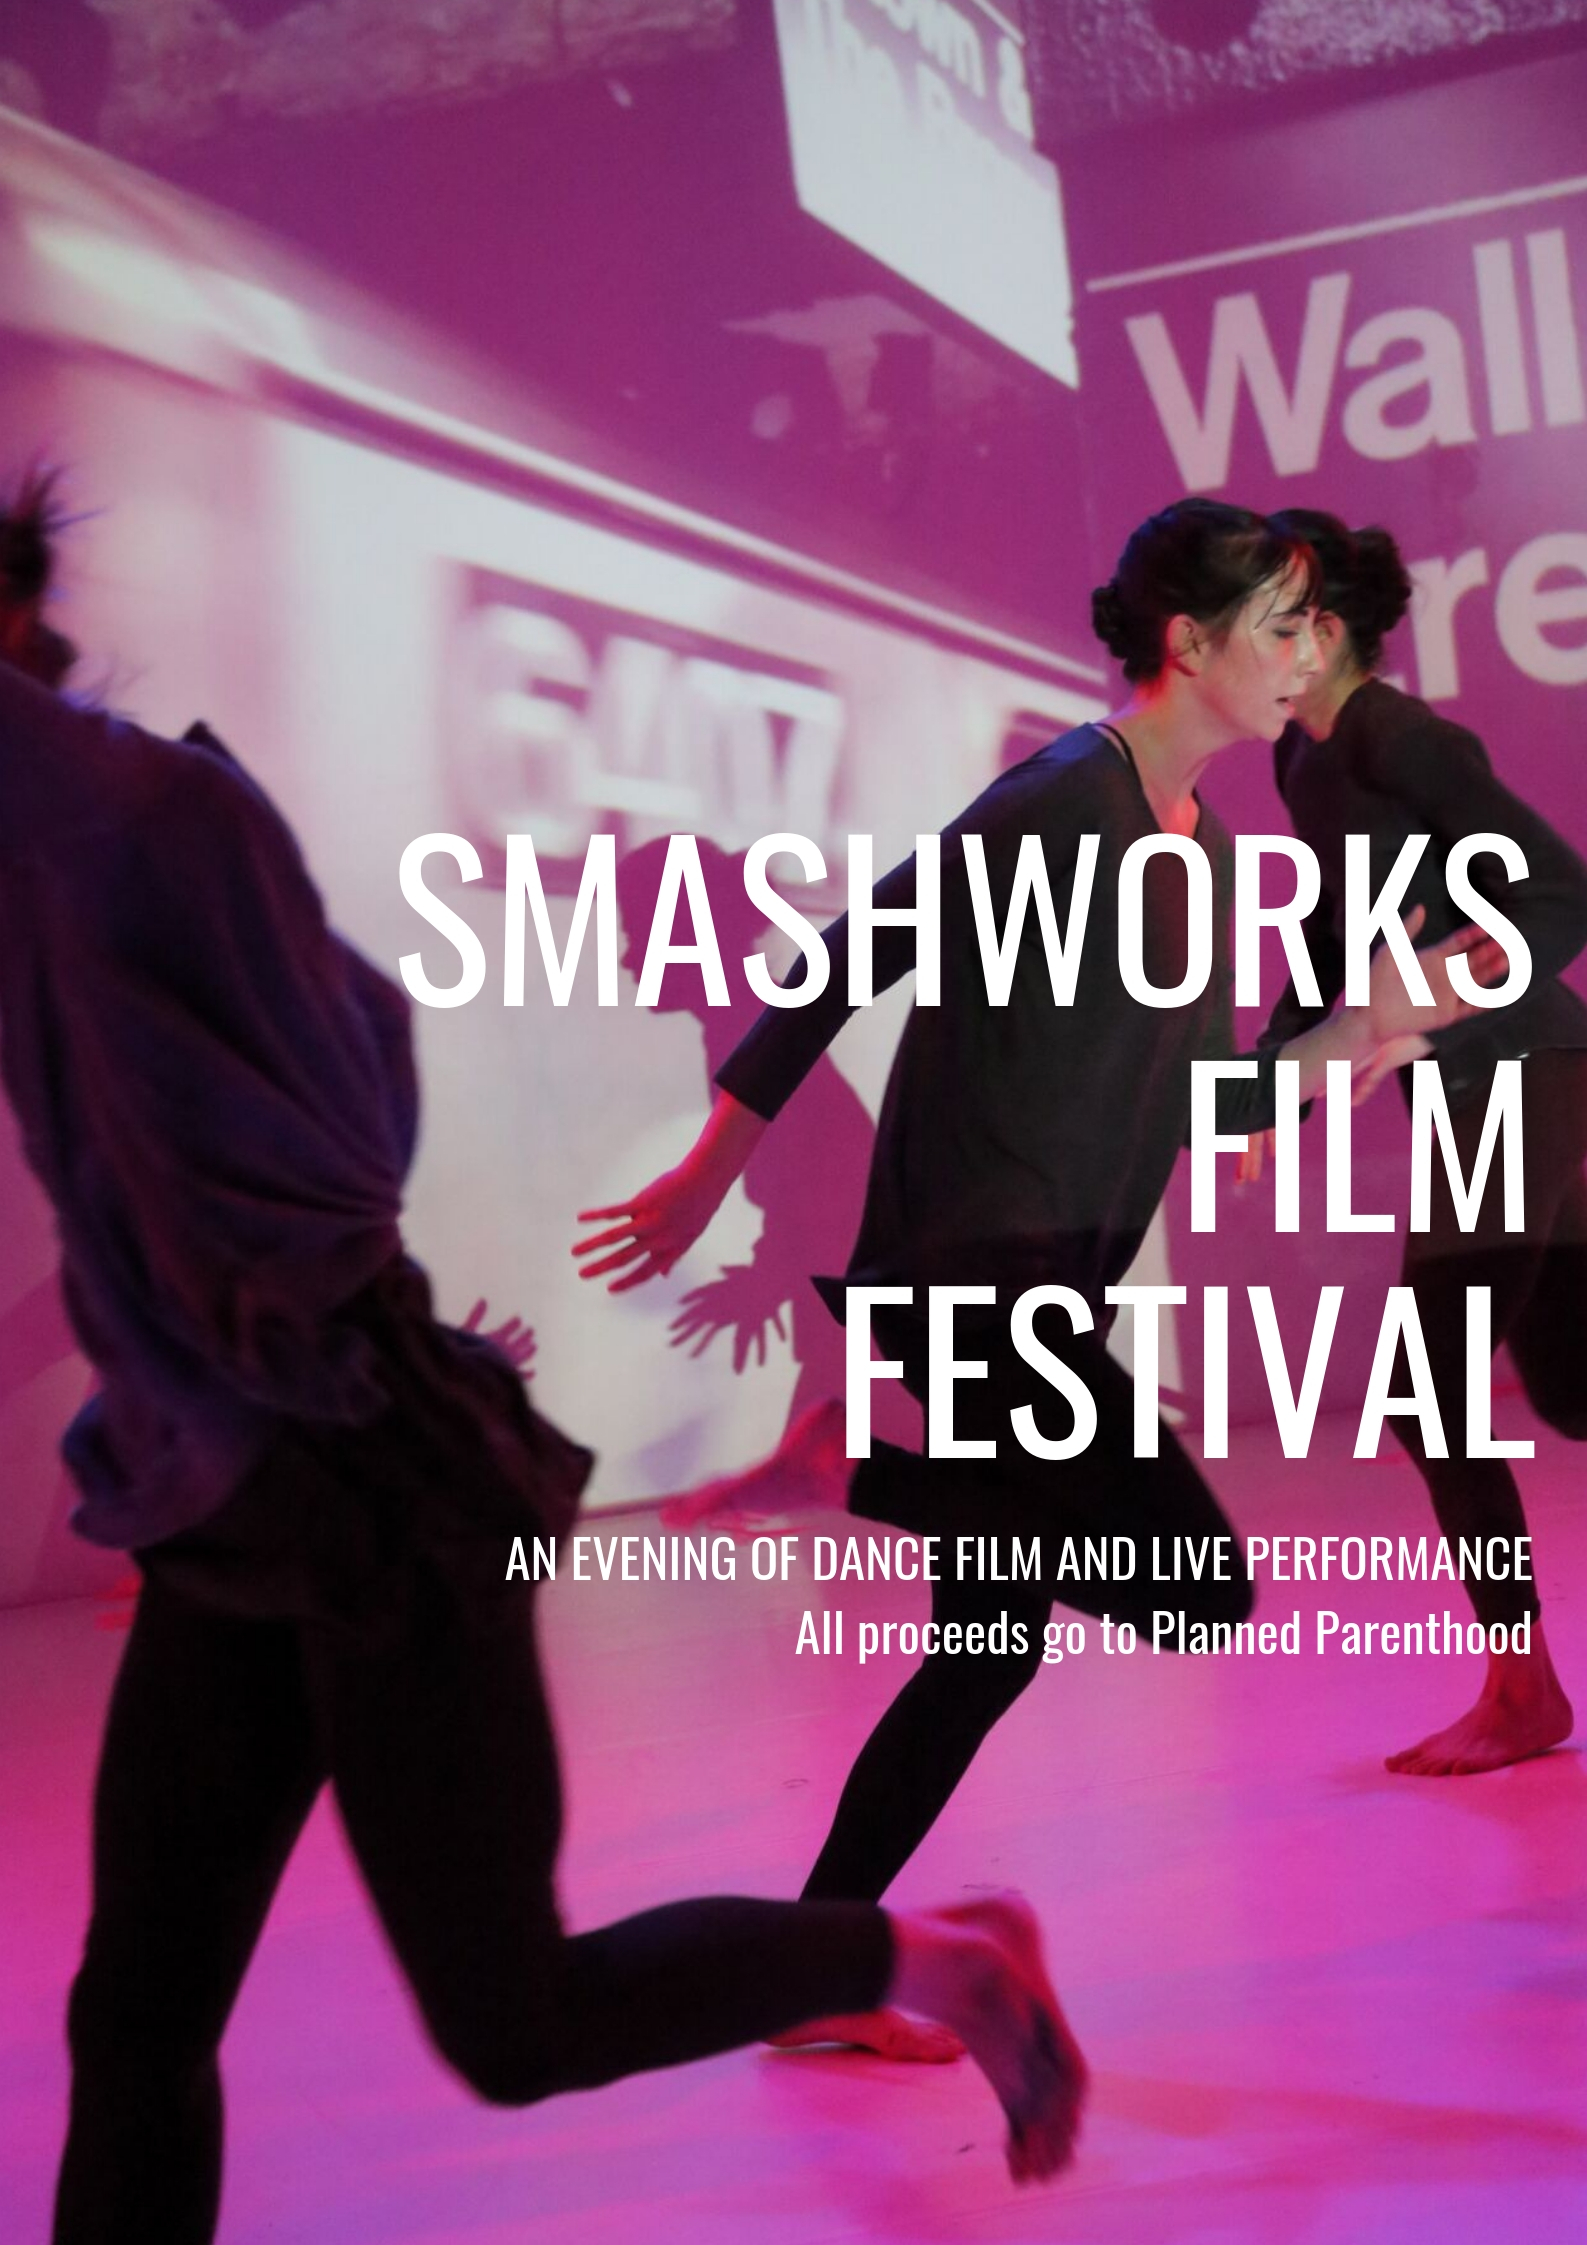 Evening of curated dance films with all profits donated to Planned Parenthood.